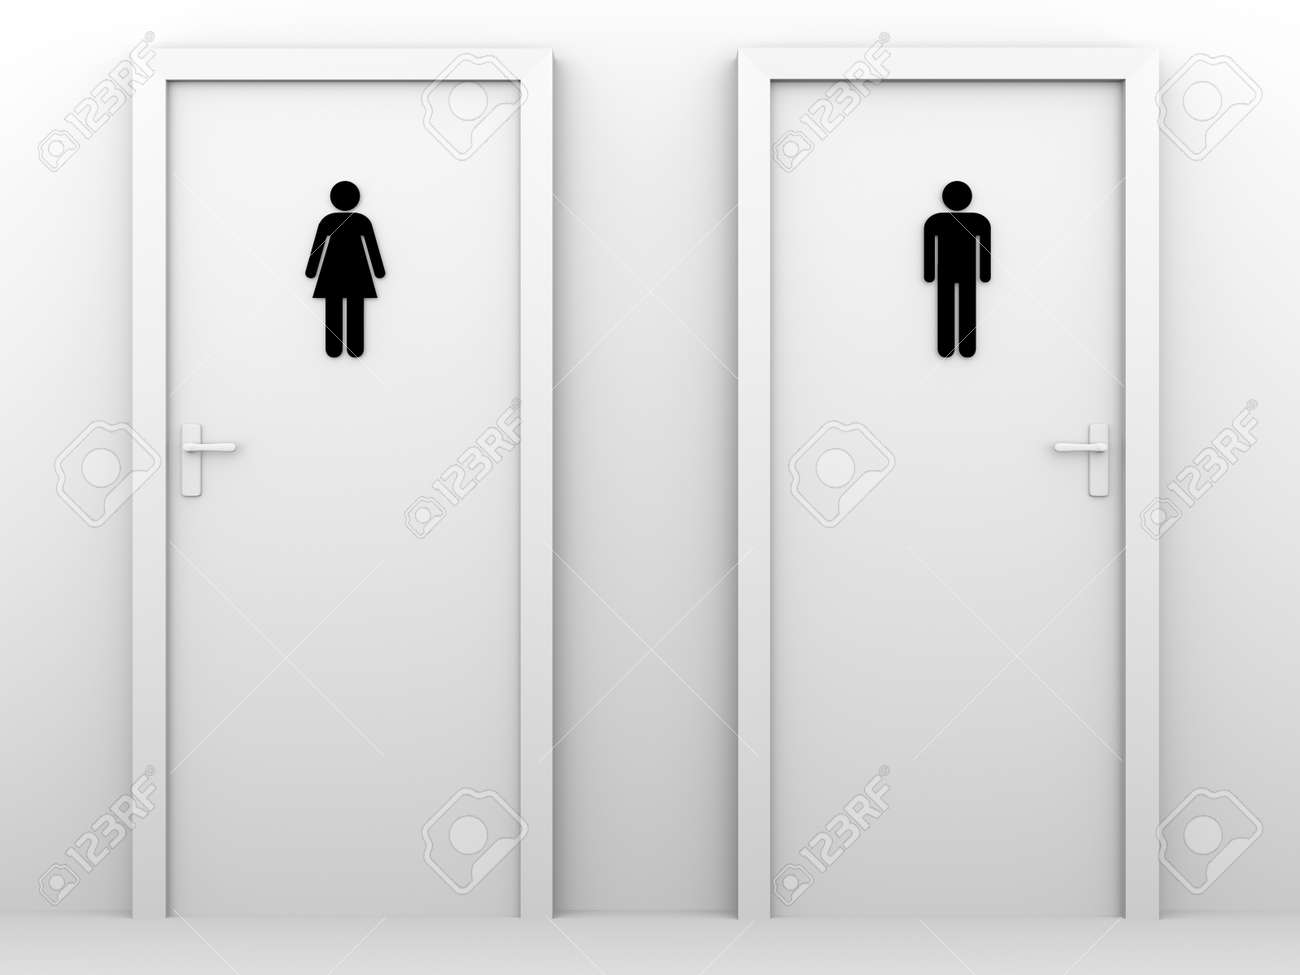 Stock photo toilet doors for male and female genders